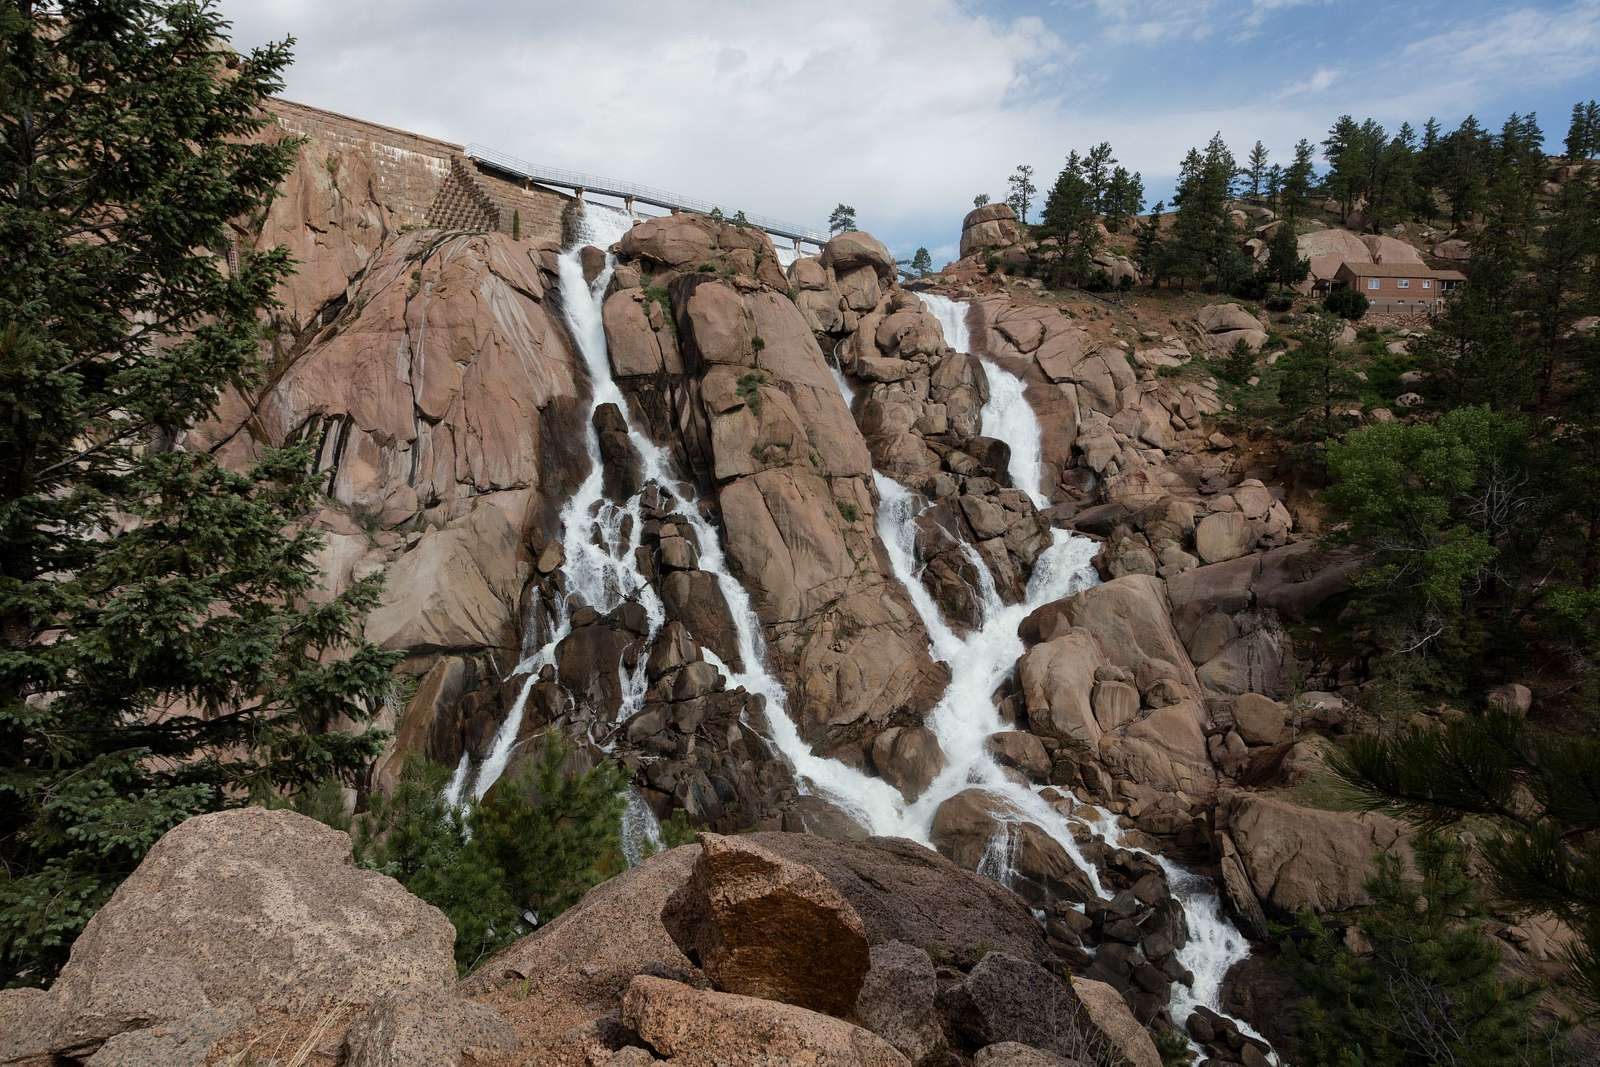 Water spills over the venerable Cheesman Dam in Jefferson County, Colorado. Cheesman is one of the dams that slows and captures water from the South Platte River for use as part of Denver's drinking-water supply. Cheesman Dam, which was named for Walter Scott Cheesman, a Denver druggist, railroad builder, and designer of water infrastructure, was the world's tallest at 221 feet when it was completed in 1905